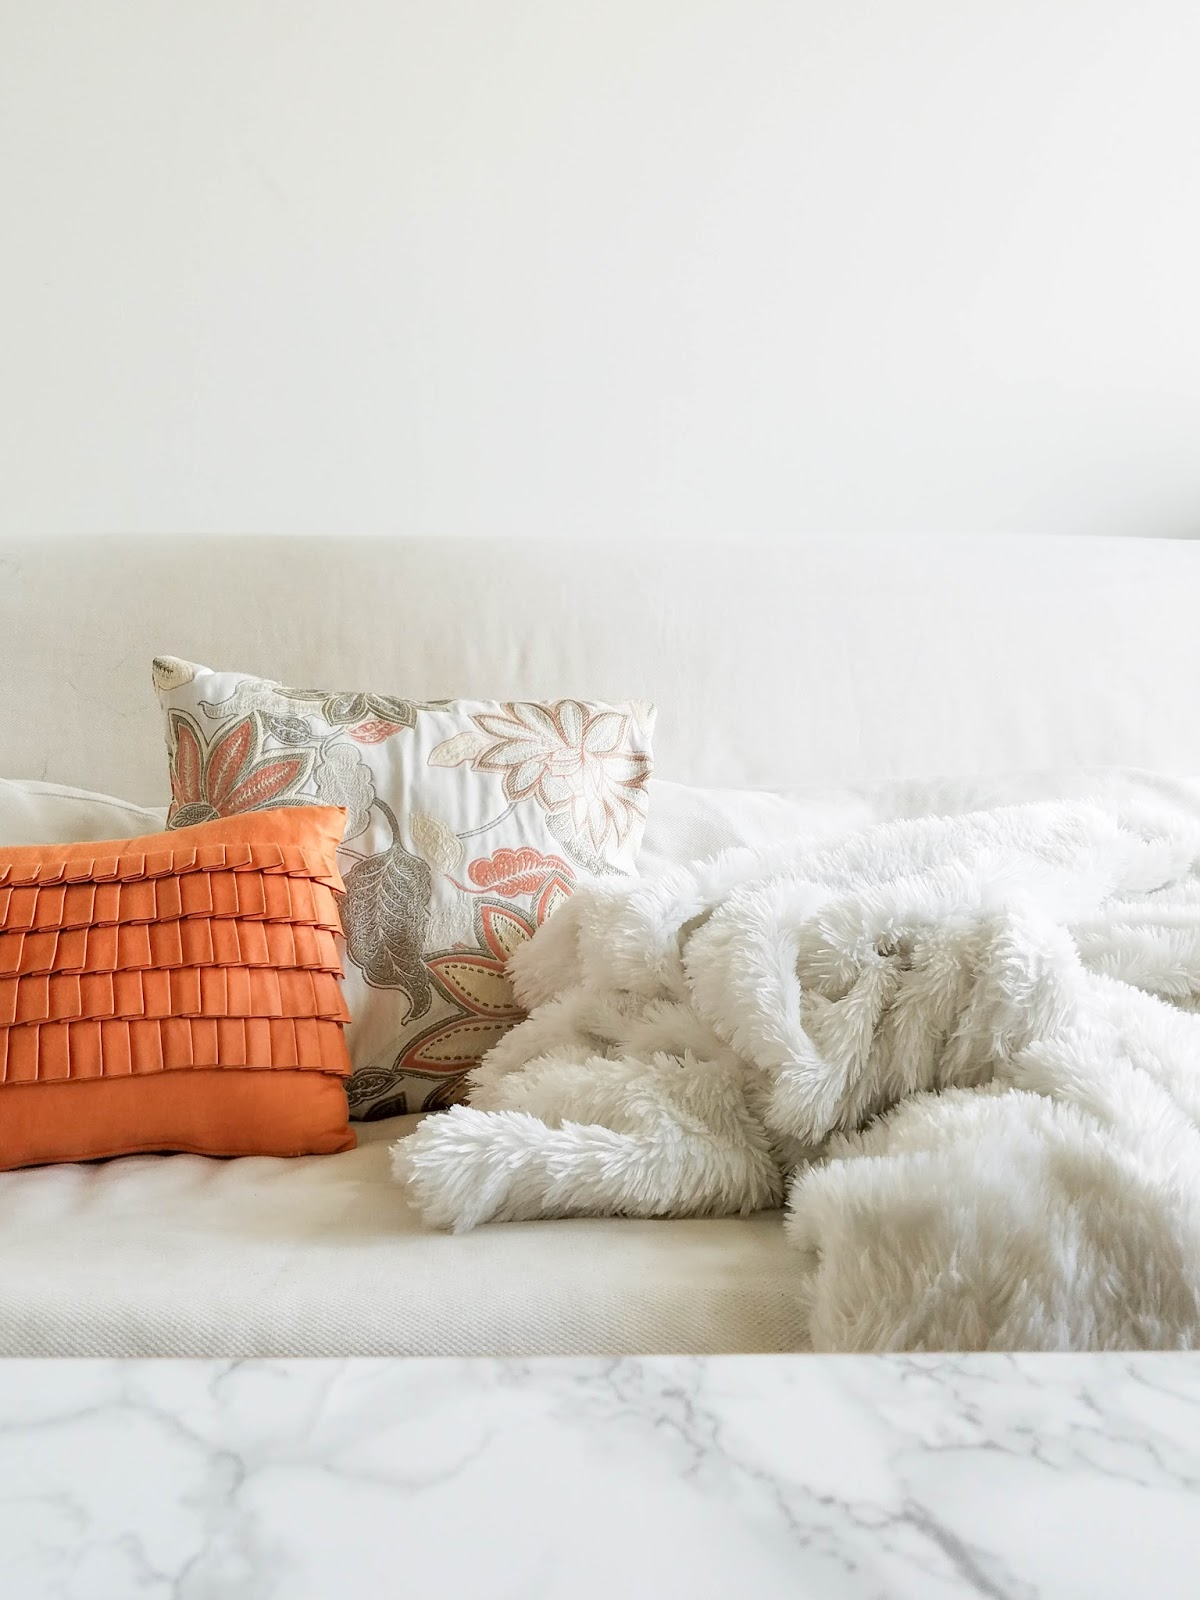 5 Surprising Lessons I Learned from Apartment Living | The Bella Insider